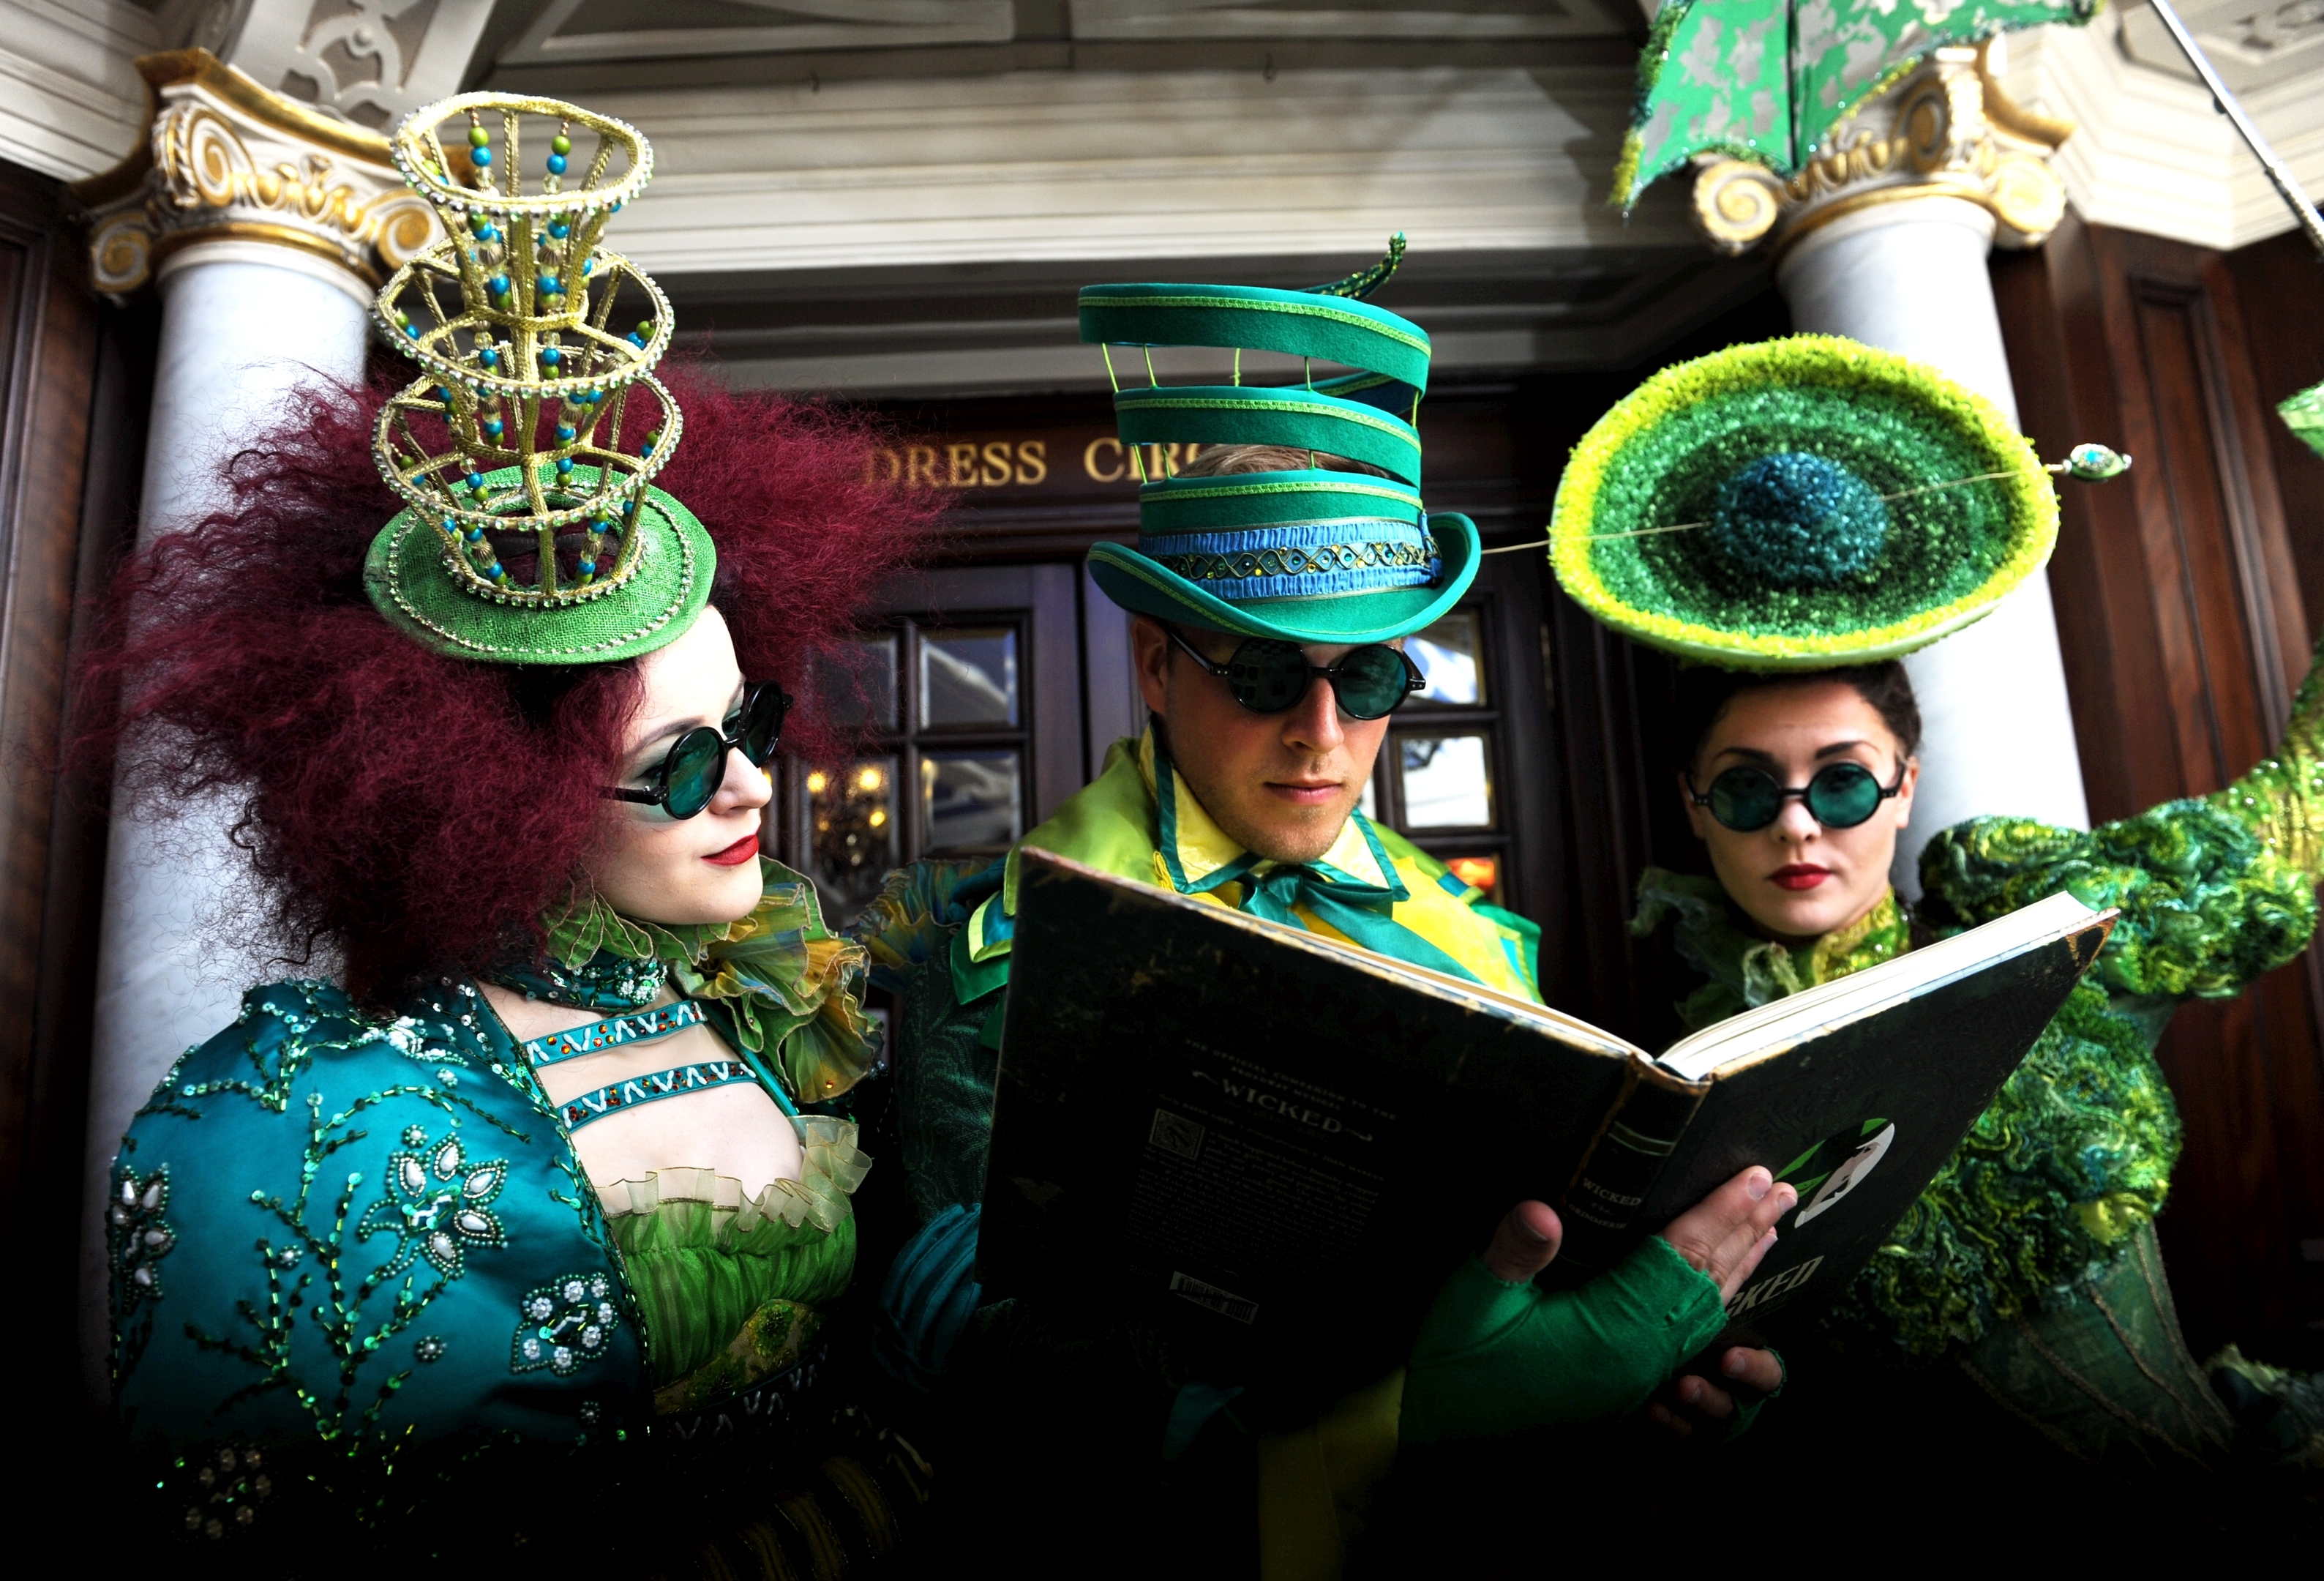 The cast of Wicked at HMT, from left, Sophie-Leigh Griffin, Danny Whitehead and Zoe George. Picture by Darrell Benns.